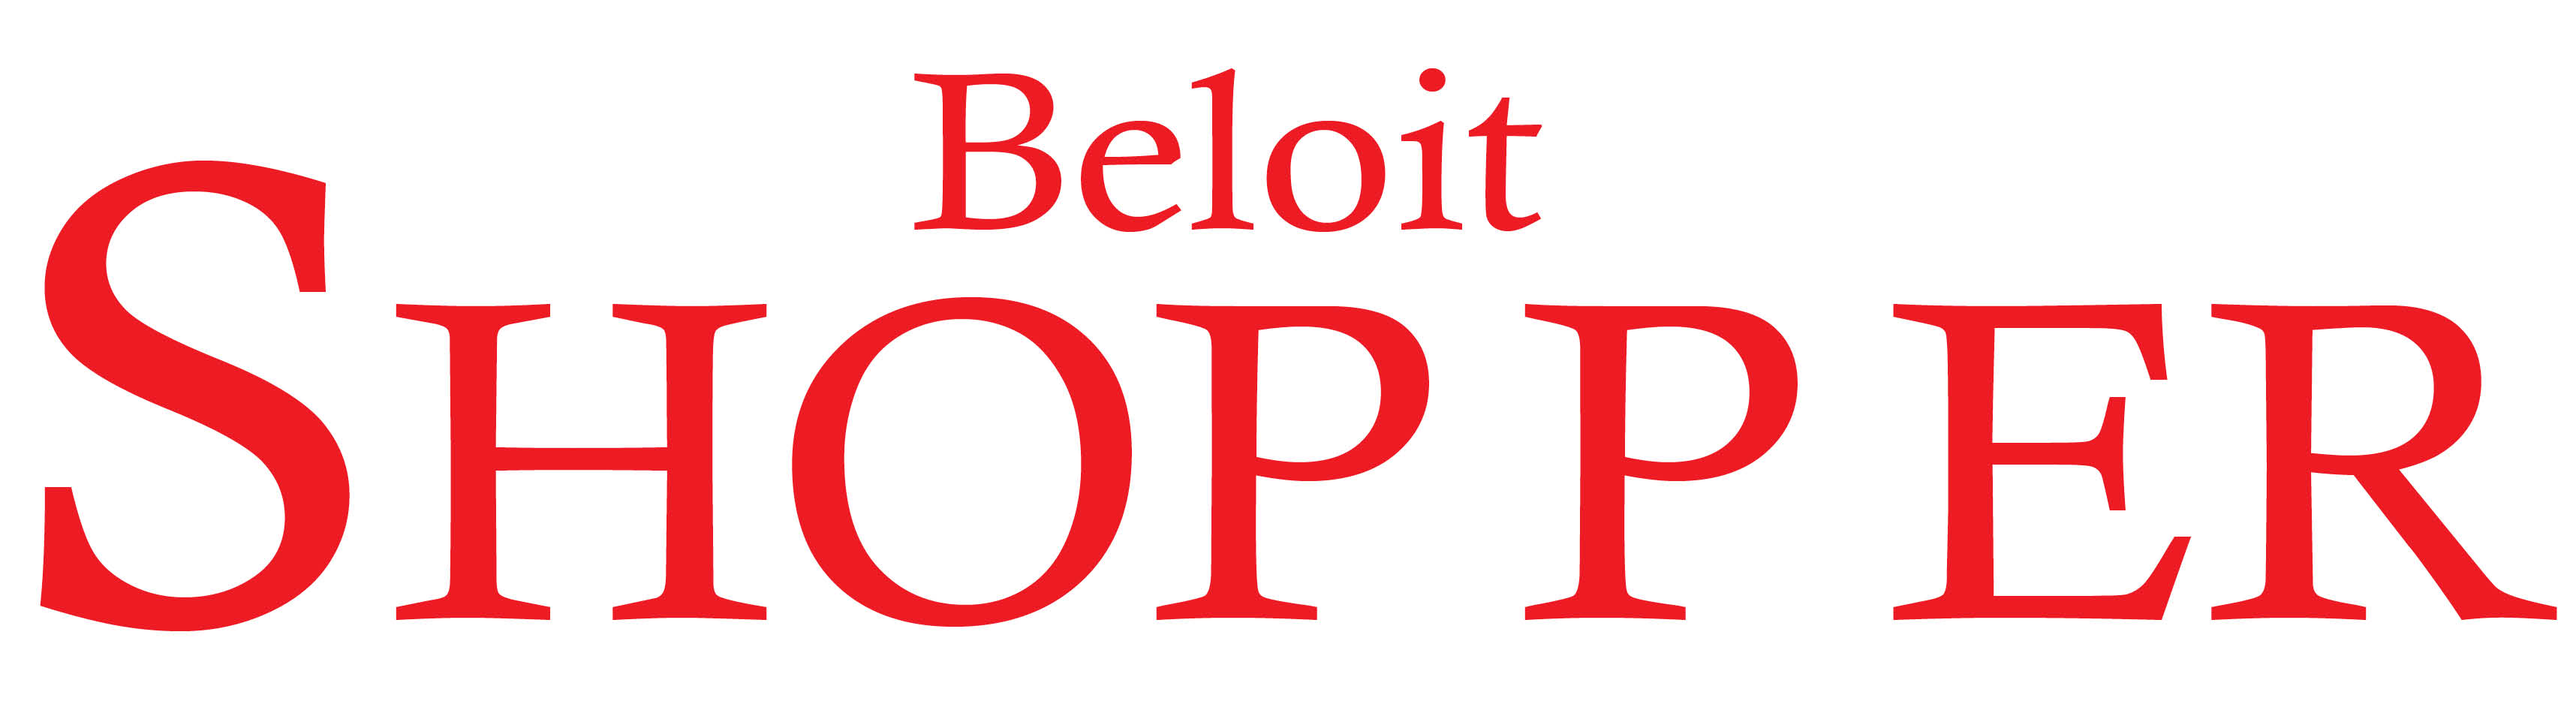 2/22/18 Beloit Shopper